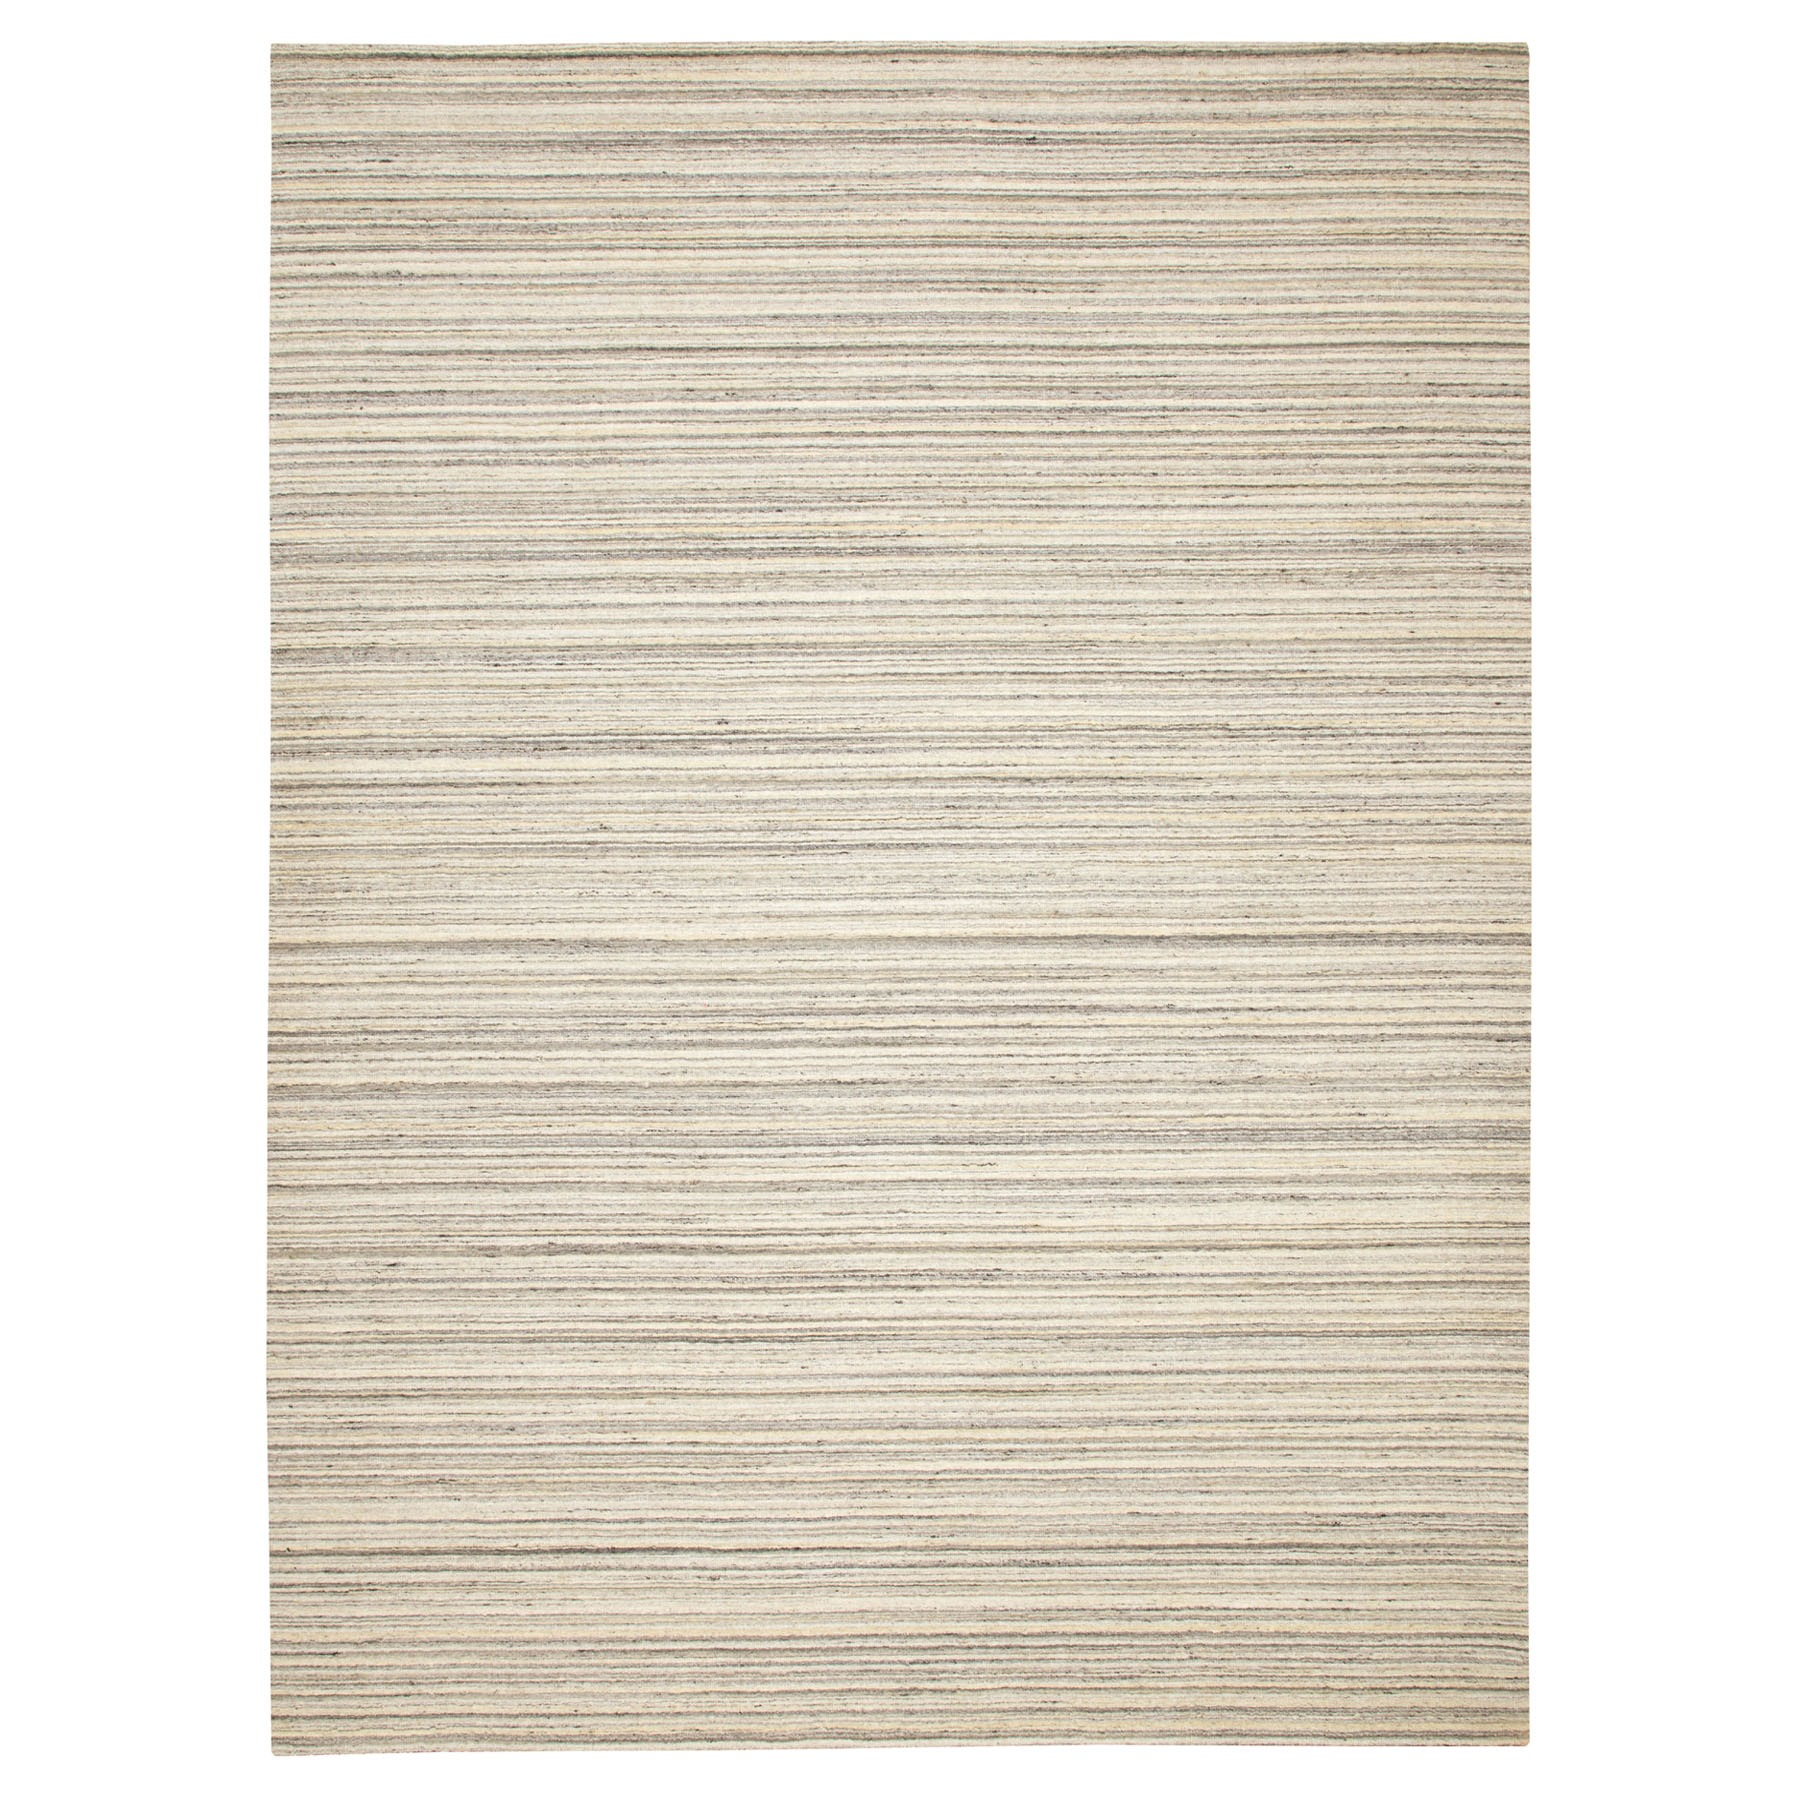 Mid Century Modern Collection Hand Loomed Beige Rug No: 1116730